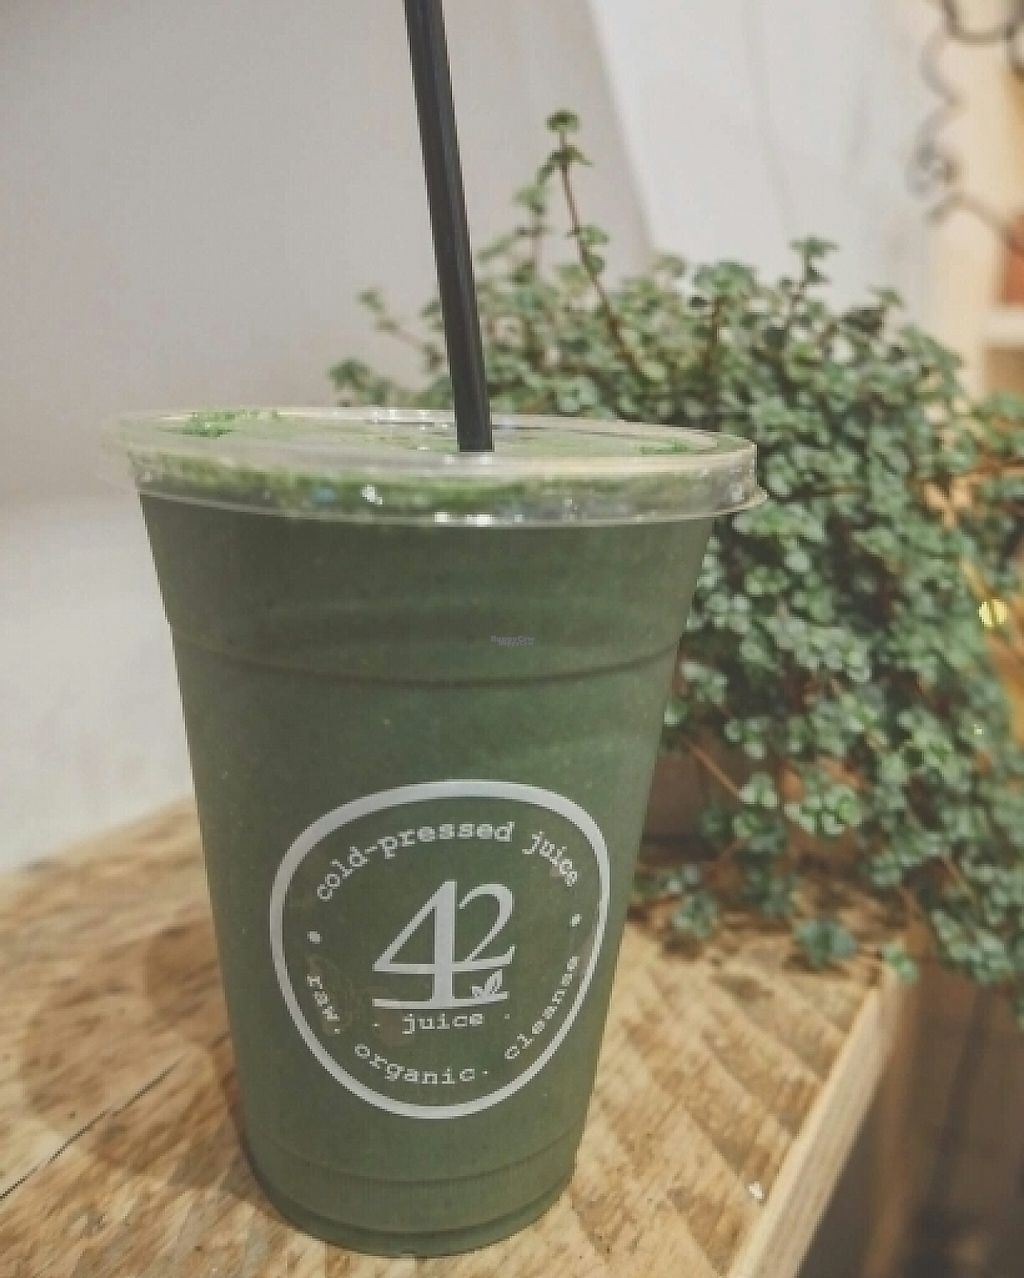 """Photo of 42 Juice  by <a href=""""/members/profile/Melissaj1990"""">Melissaj1990</a> <br/>""""I am active"""" smoothie <br/> January 1, 2017  - <a href='/contact/abuse/image/68295/206954'>Report</a>"""